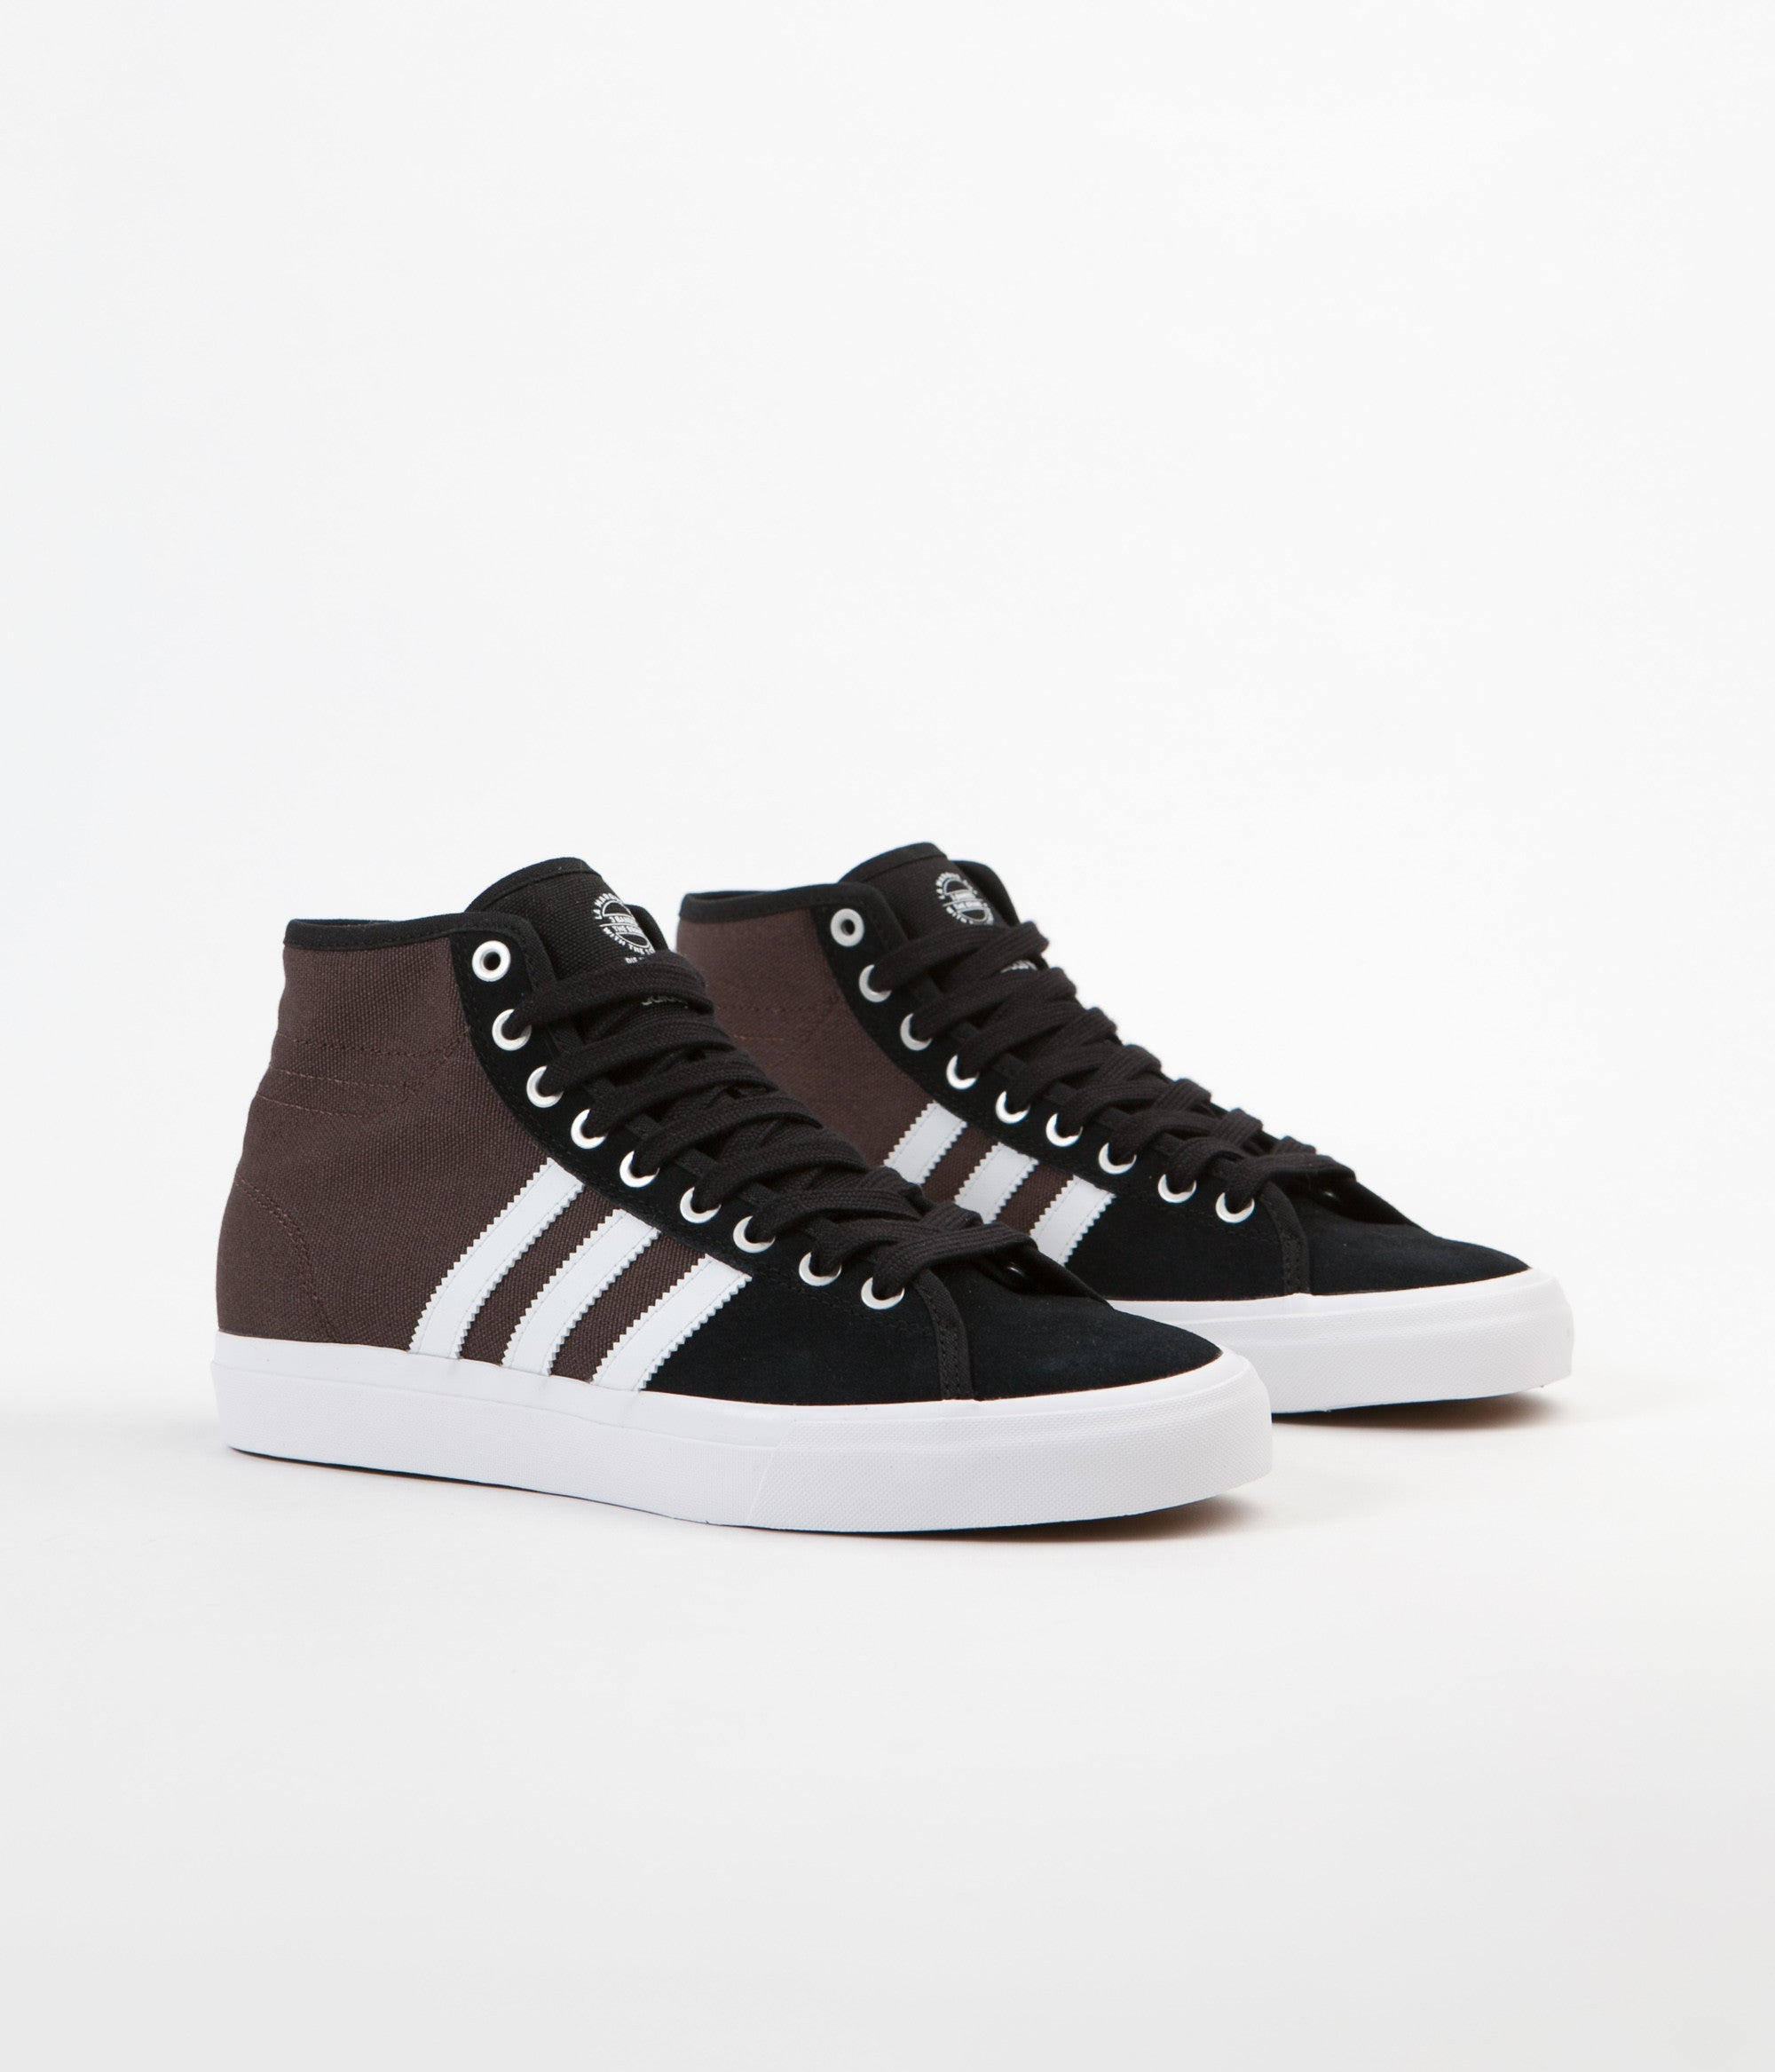 new product 3cf91 51a0c ... Adidas Matchcourt High RX Shoes - Core Black   White   Brown ...